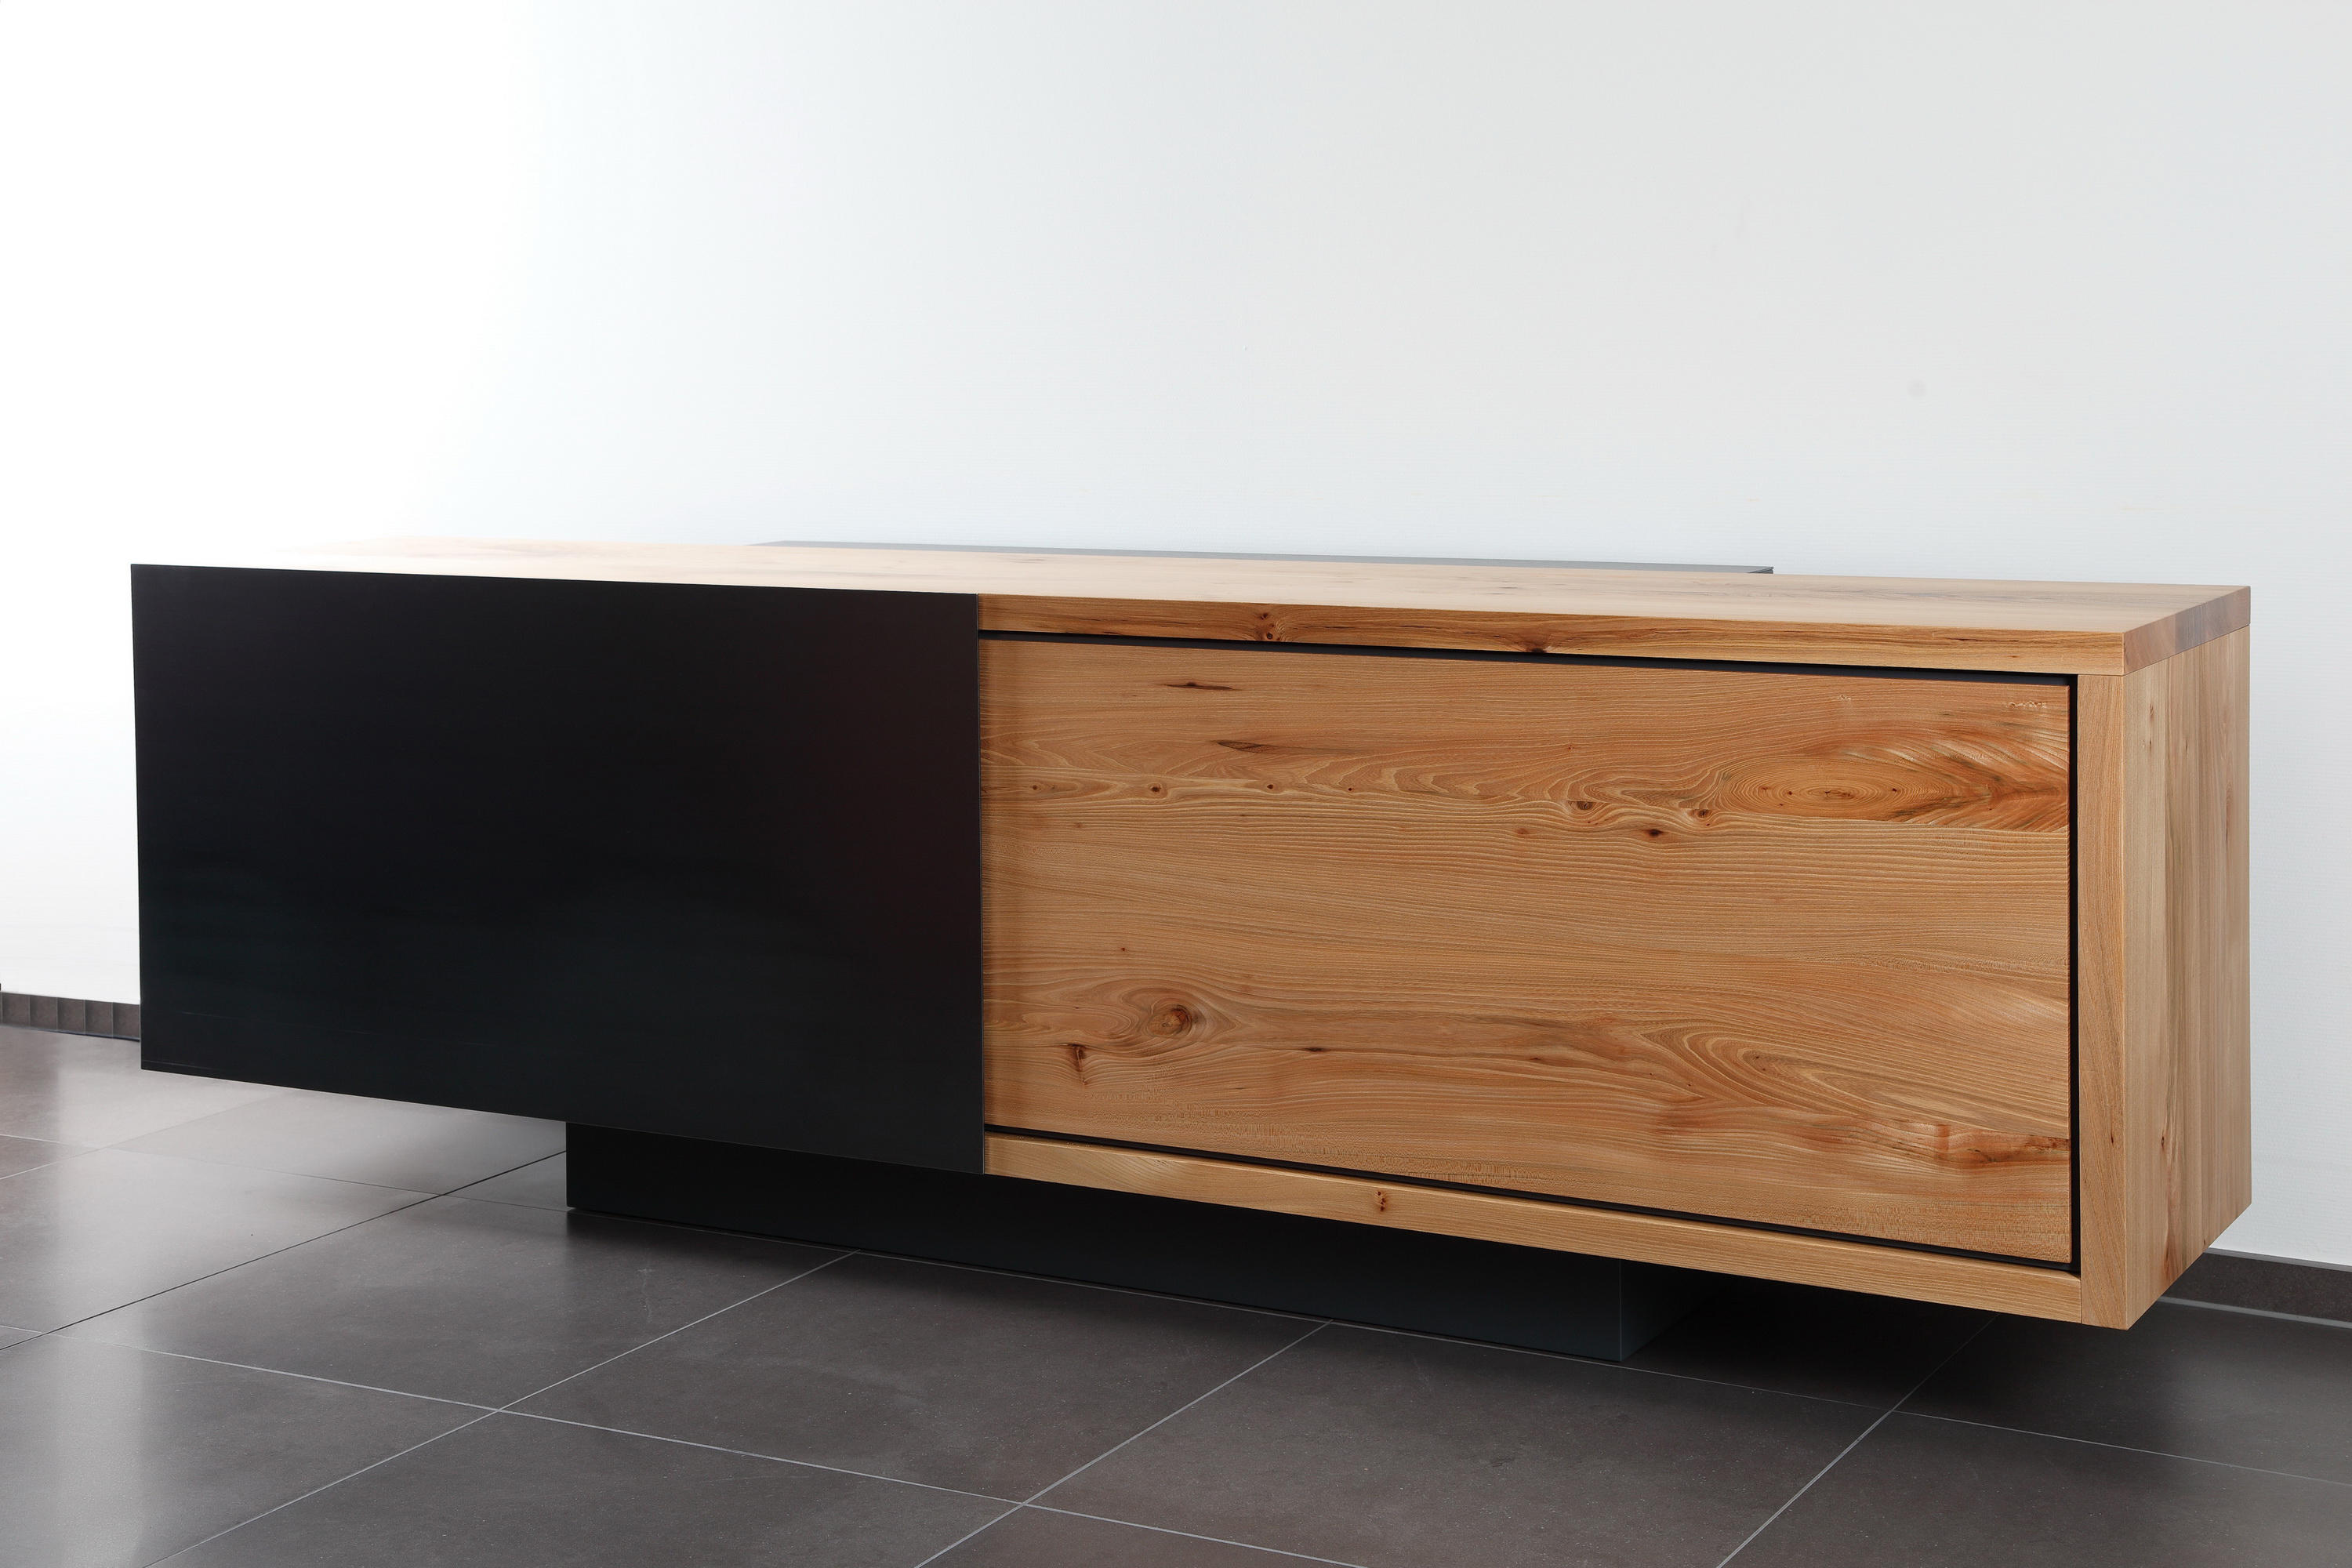 Kommode design  IGN. B2. TV. SIDEBOARD. - Multimedia Sideboards von Ign. Design ...